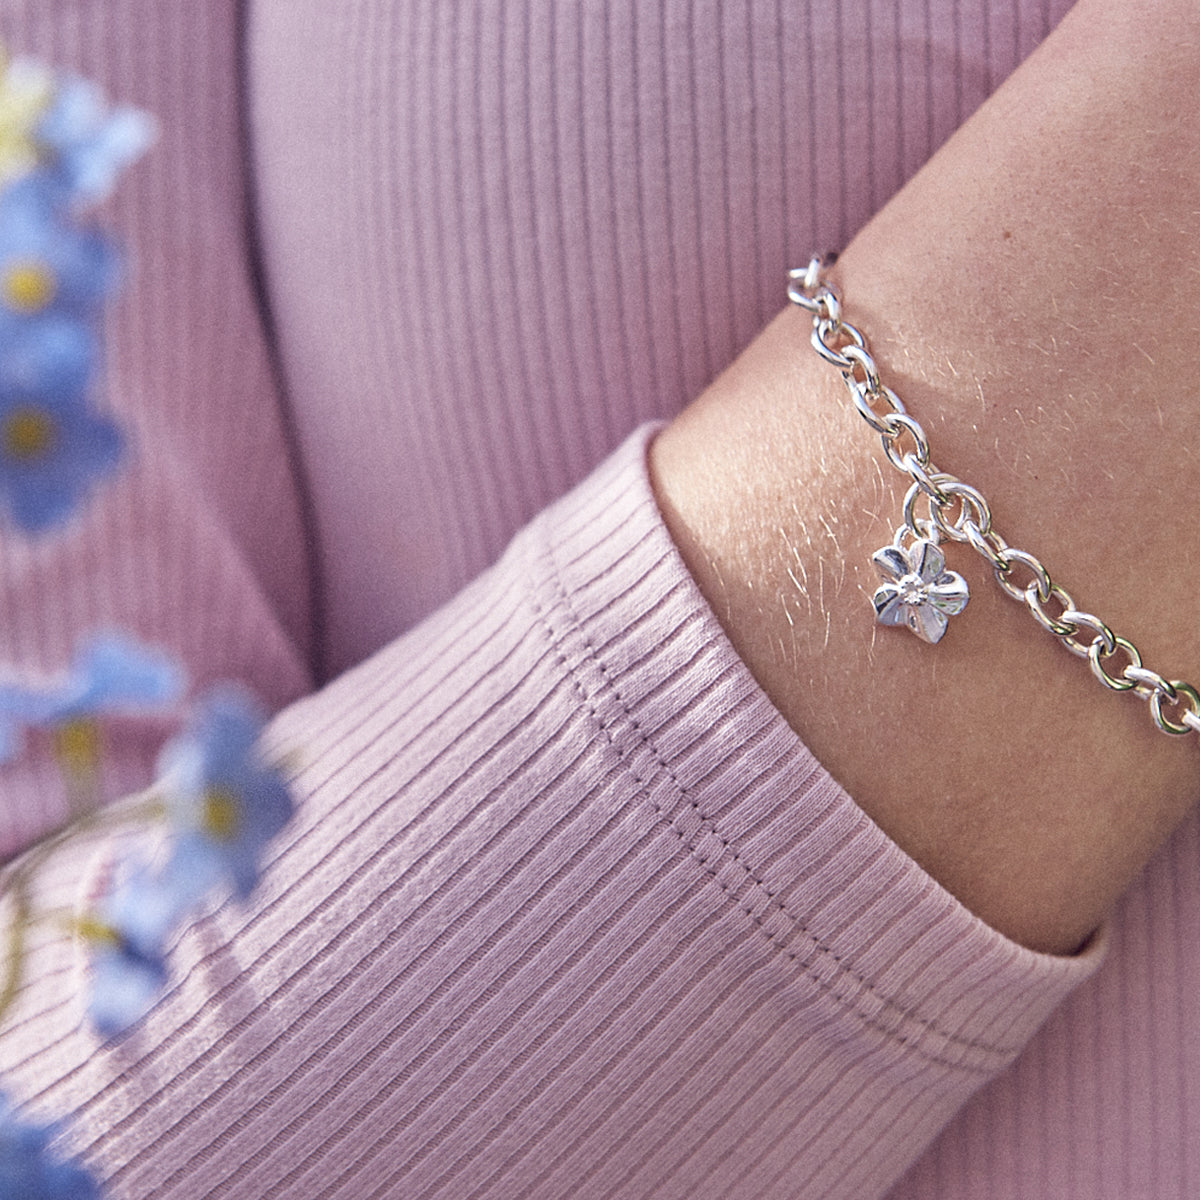 Forget Me Not Flower Silver Chain Charm Bracelet